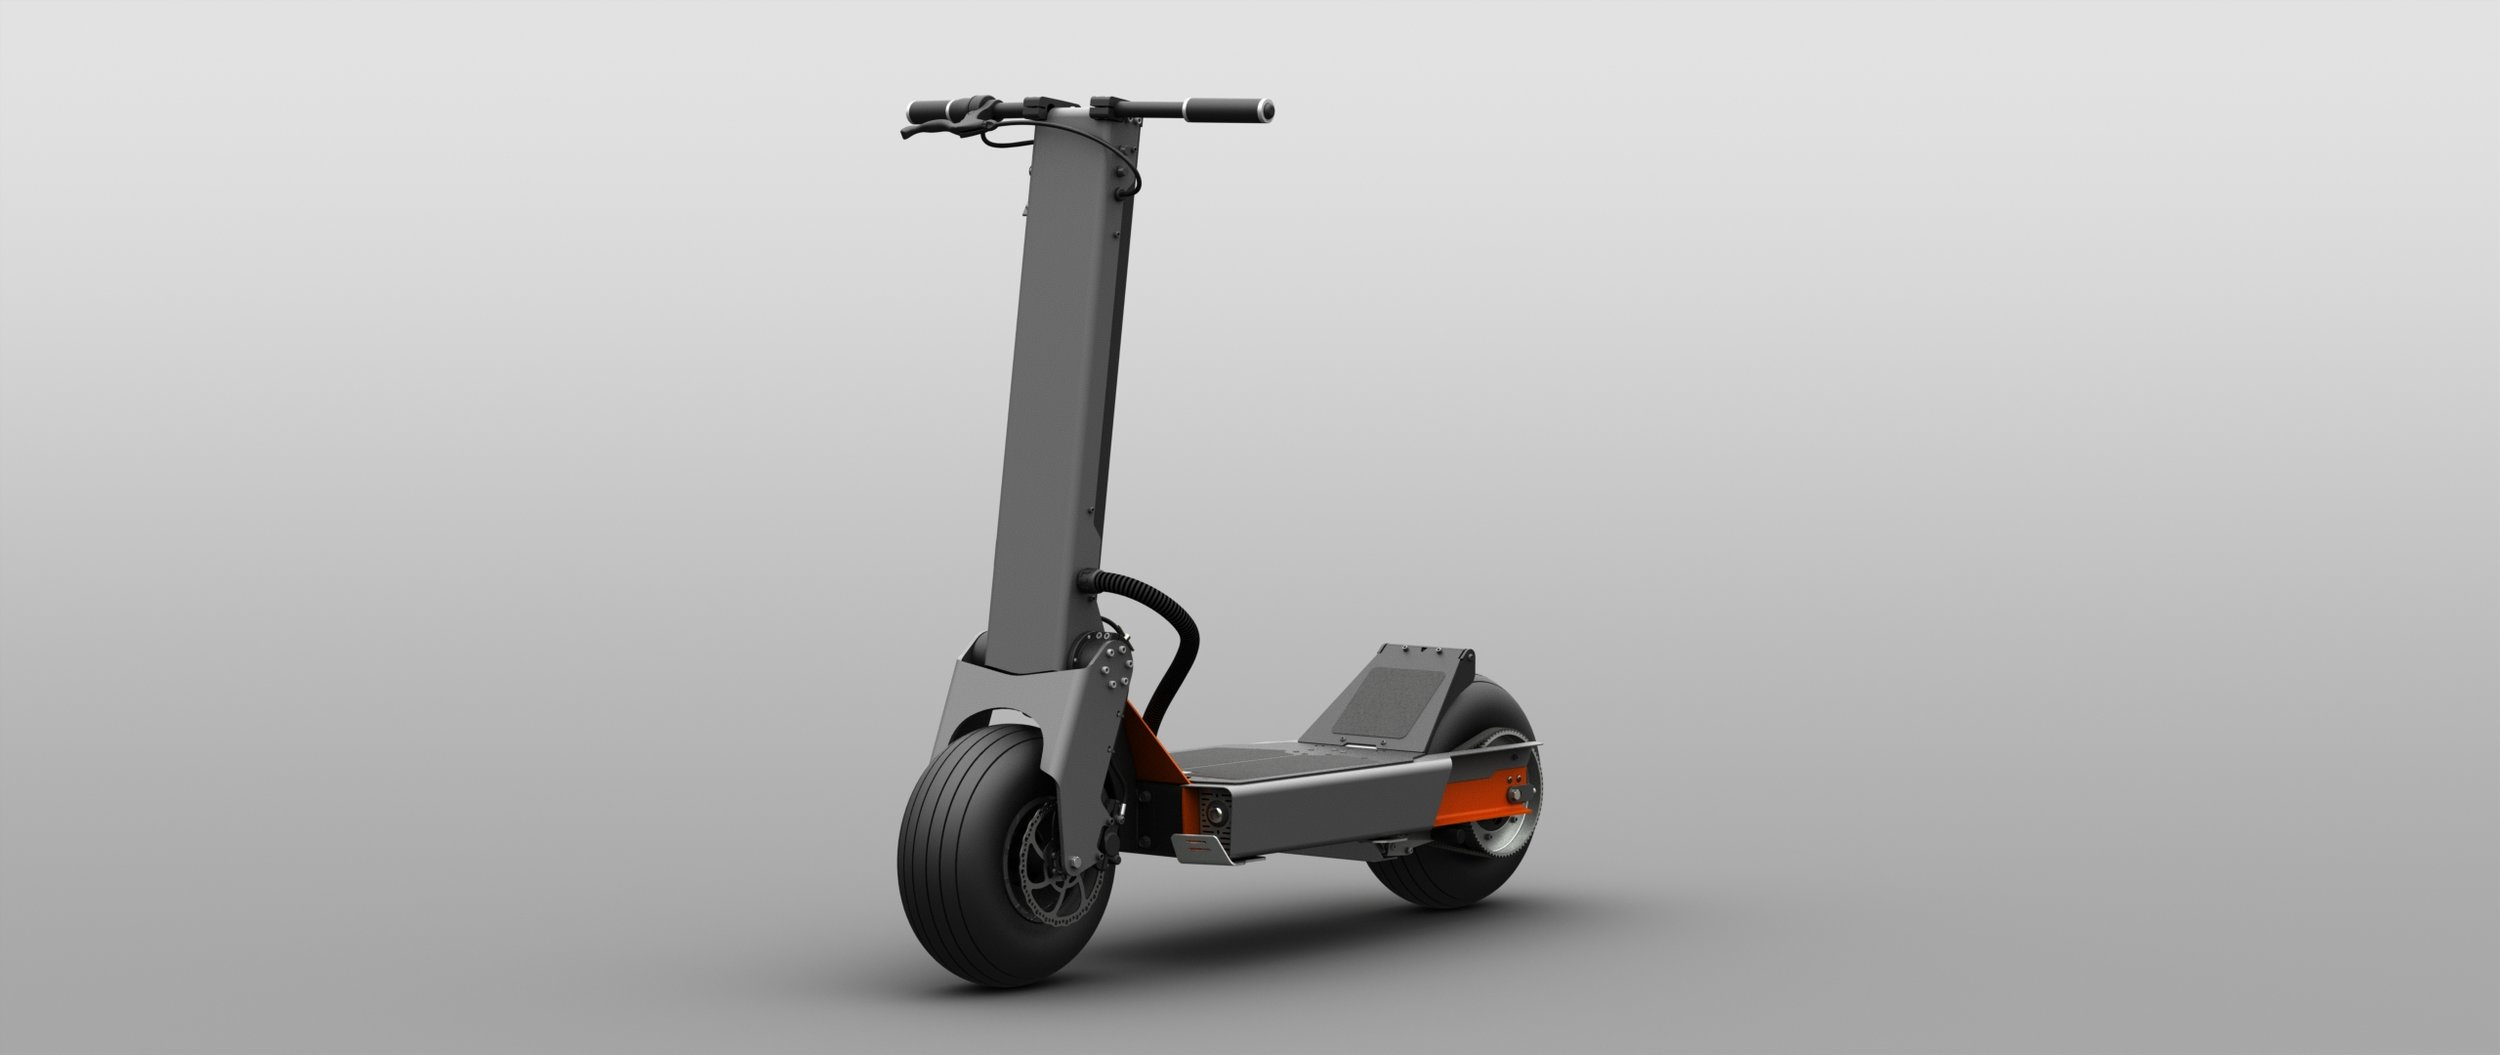 electric scooter comparison Work's Electric Hollyburn SS